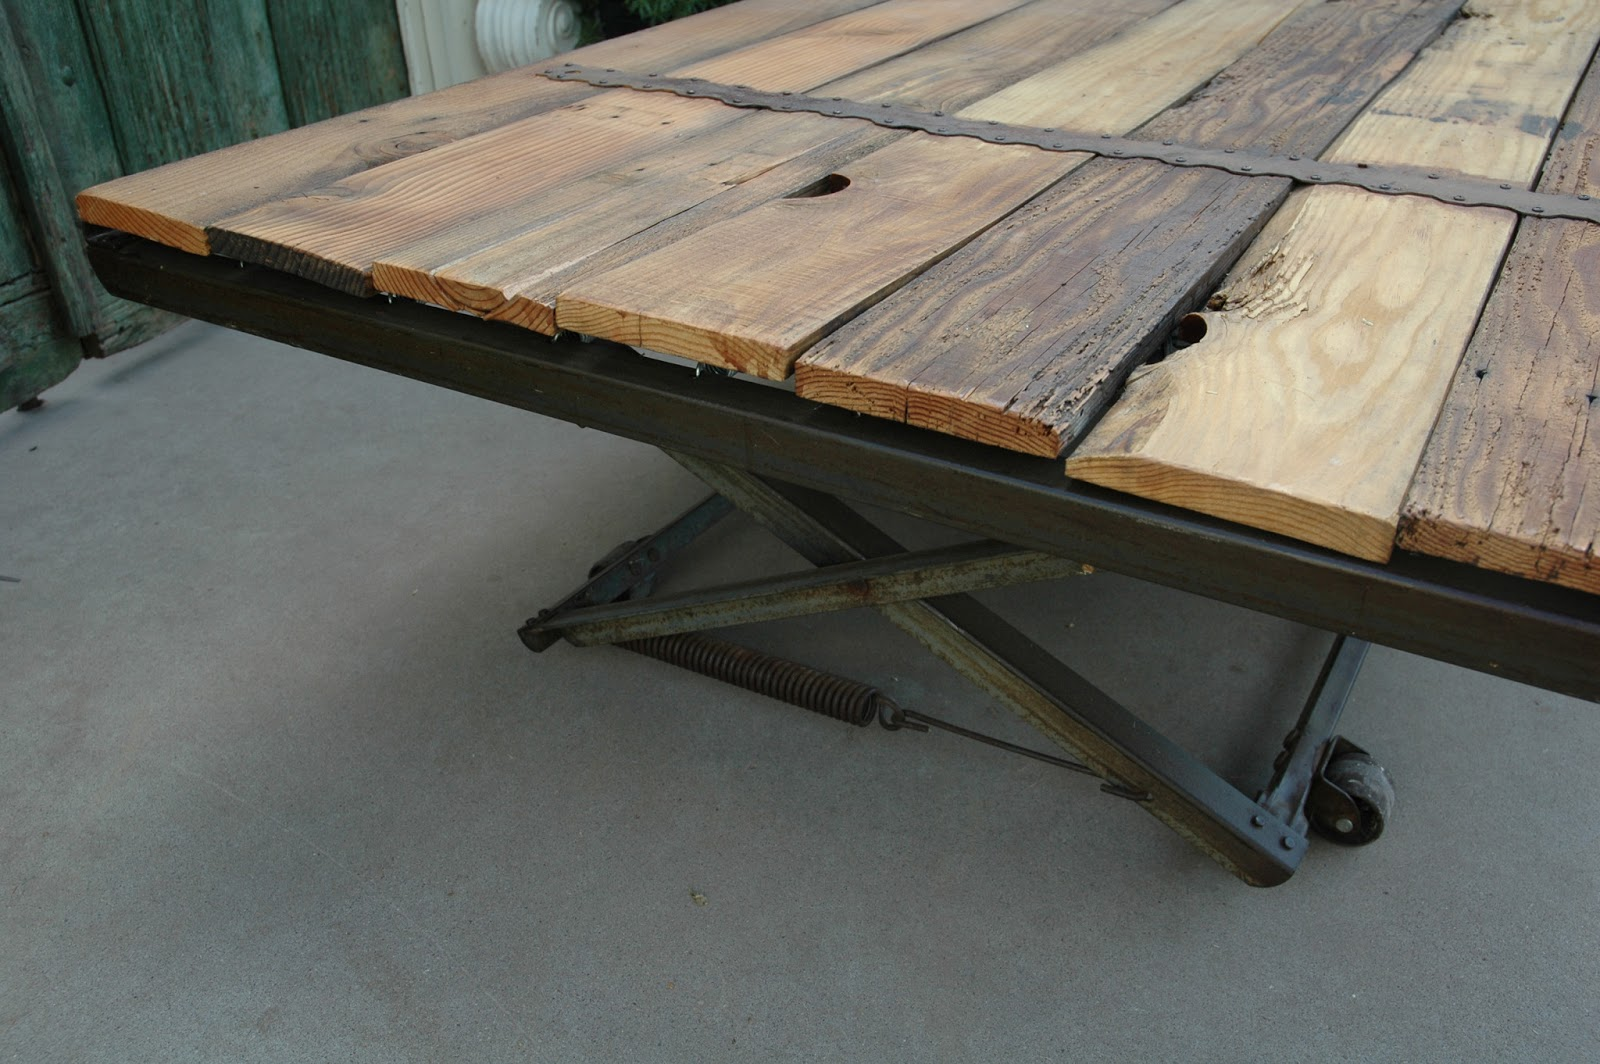 Gentil Coffee Table Made From Old Trundle Bed Frame